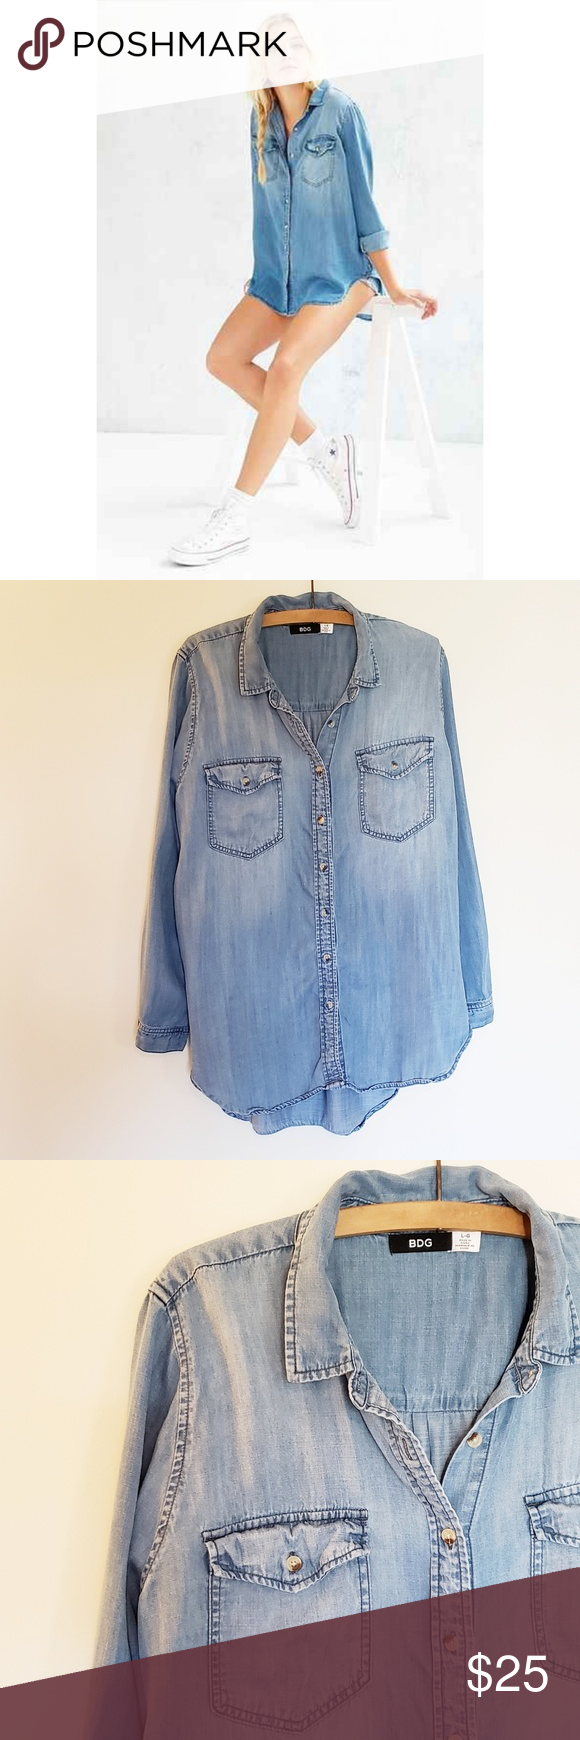 b1be6bd05 ▫️BDG▫ Urban outfitters drapey chambray button up shirt. Cozy! Urban  Outfitters